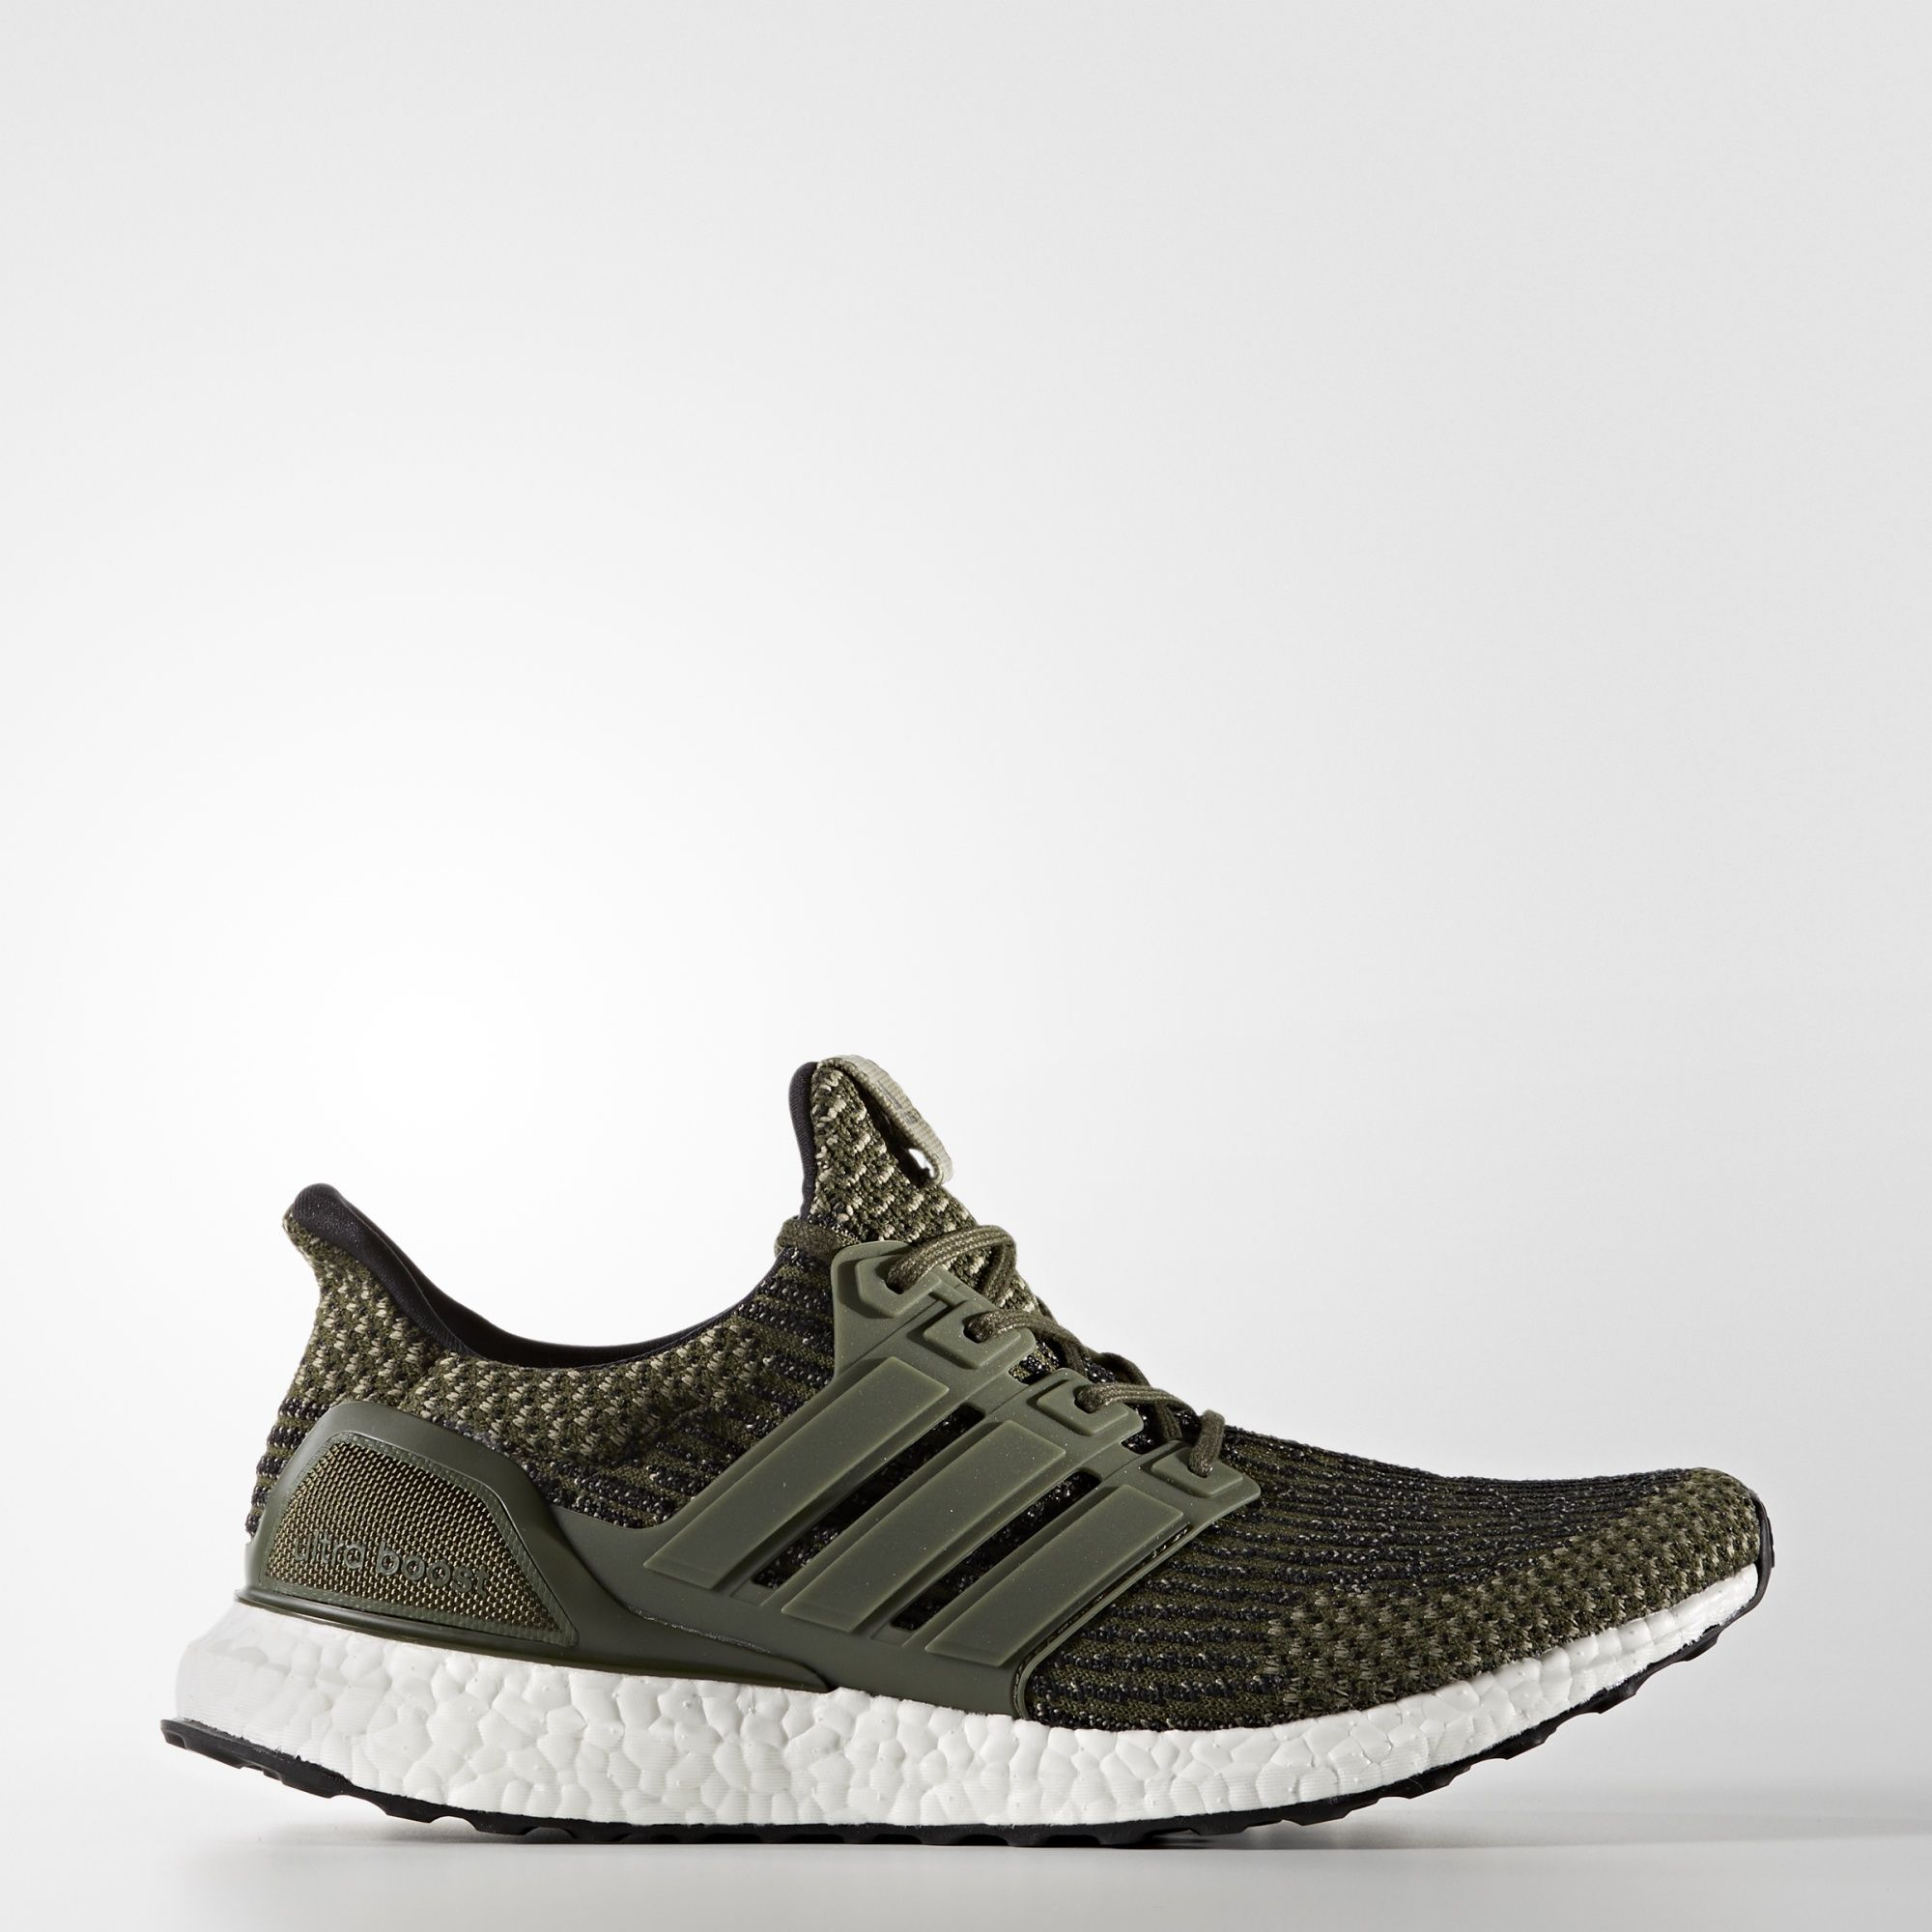 adidas - Ultra Boost Limited-Edition Shoes